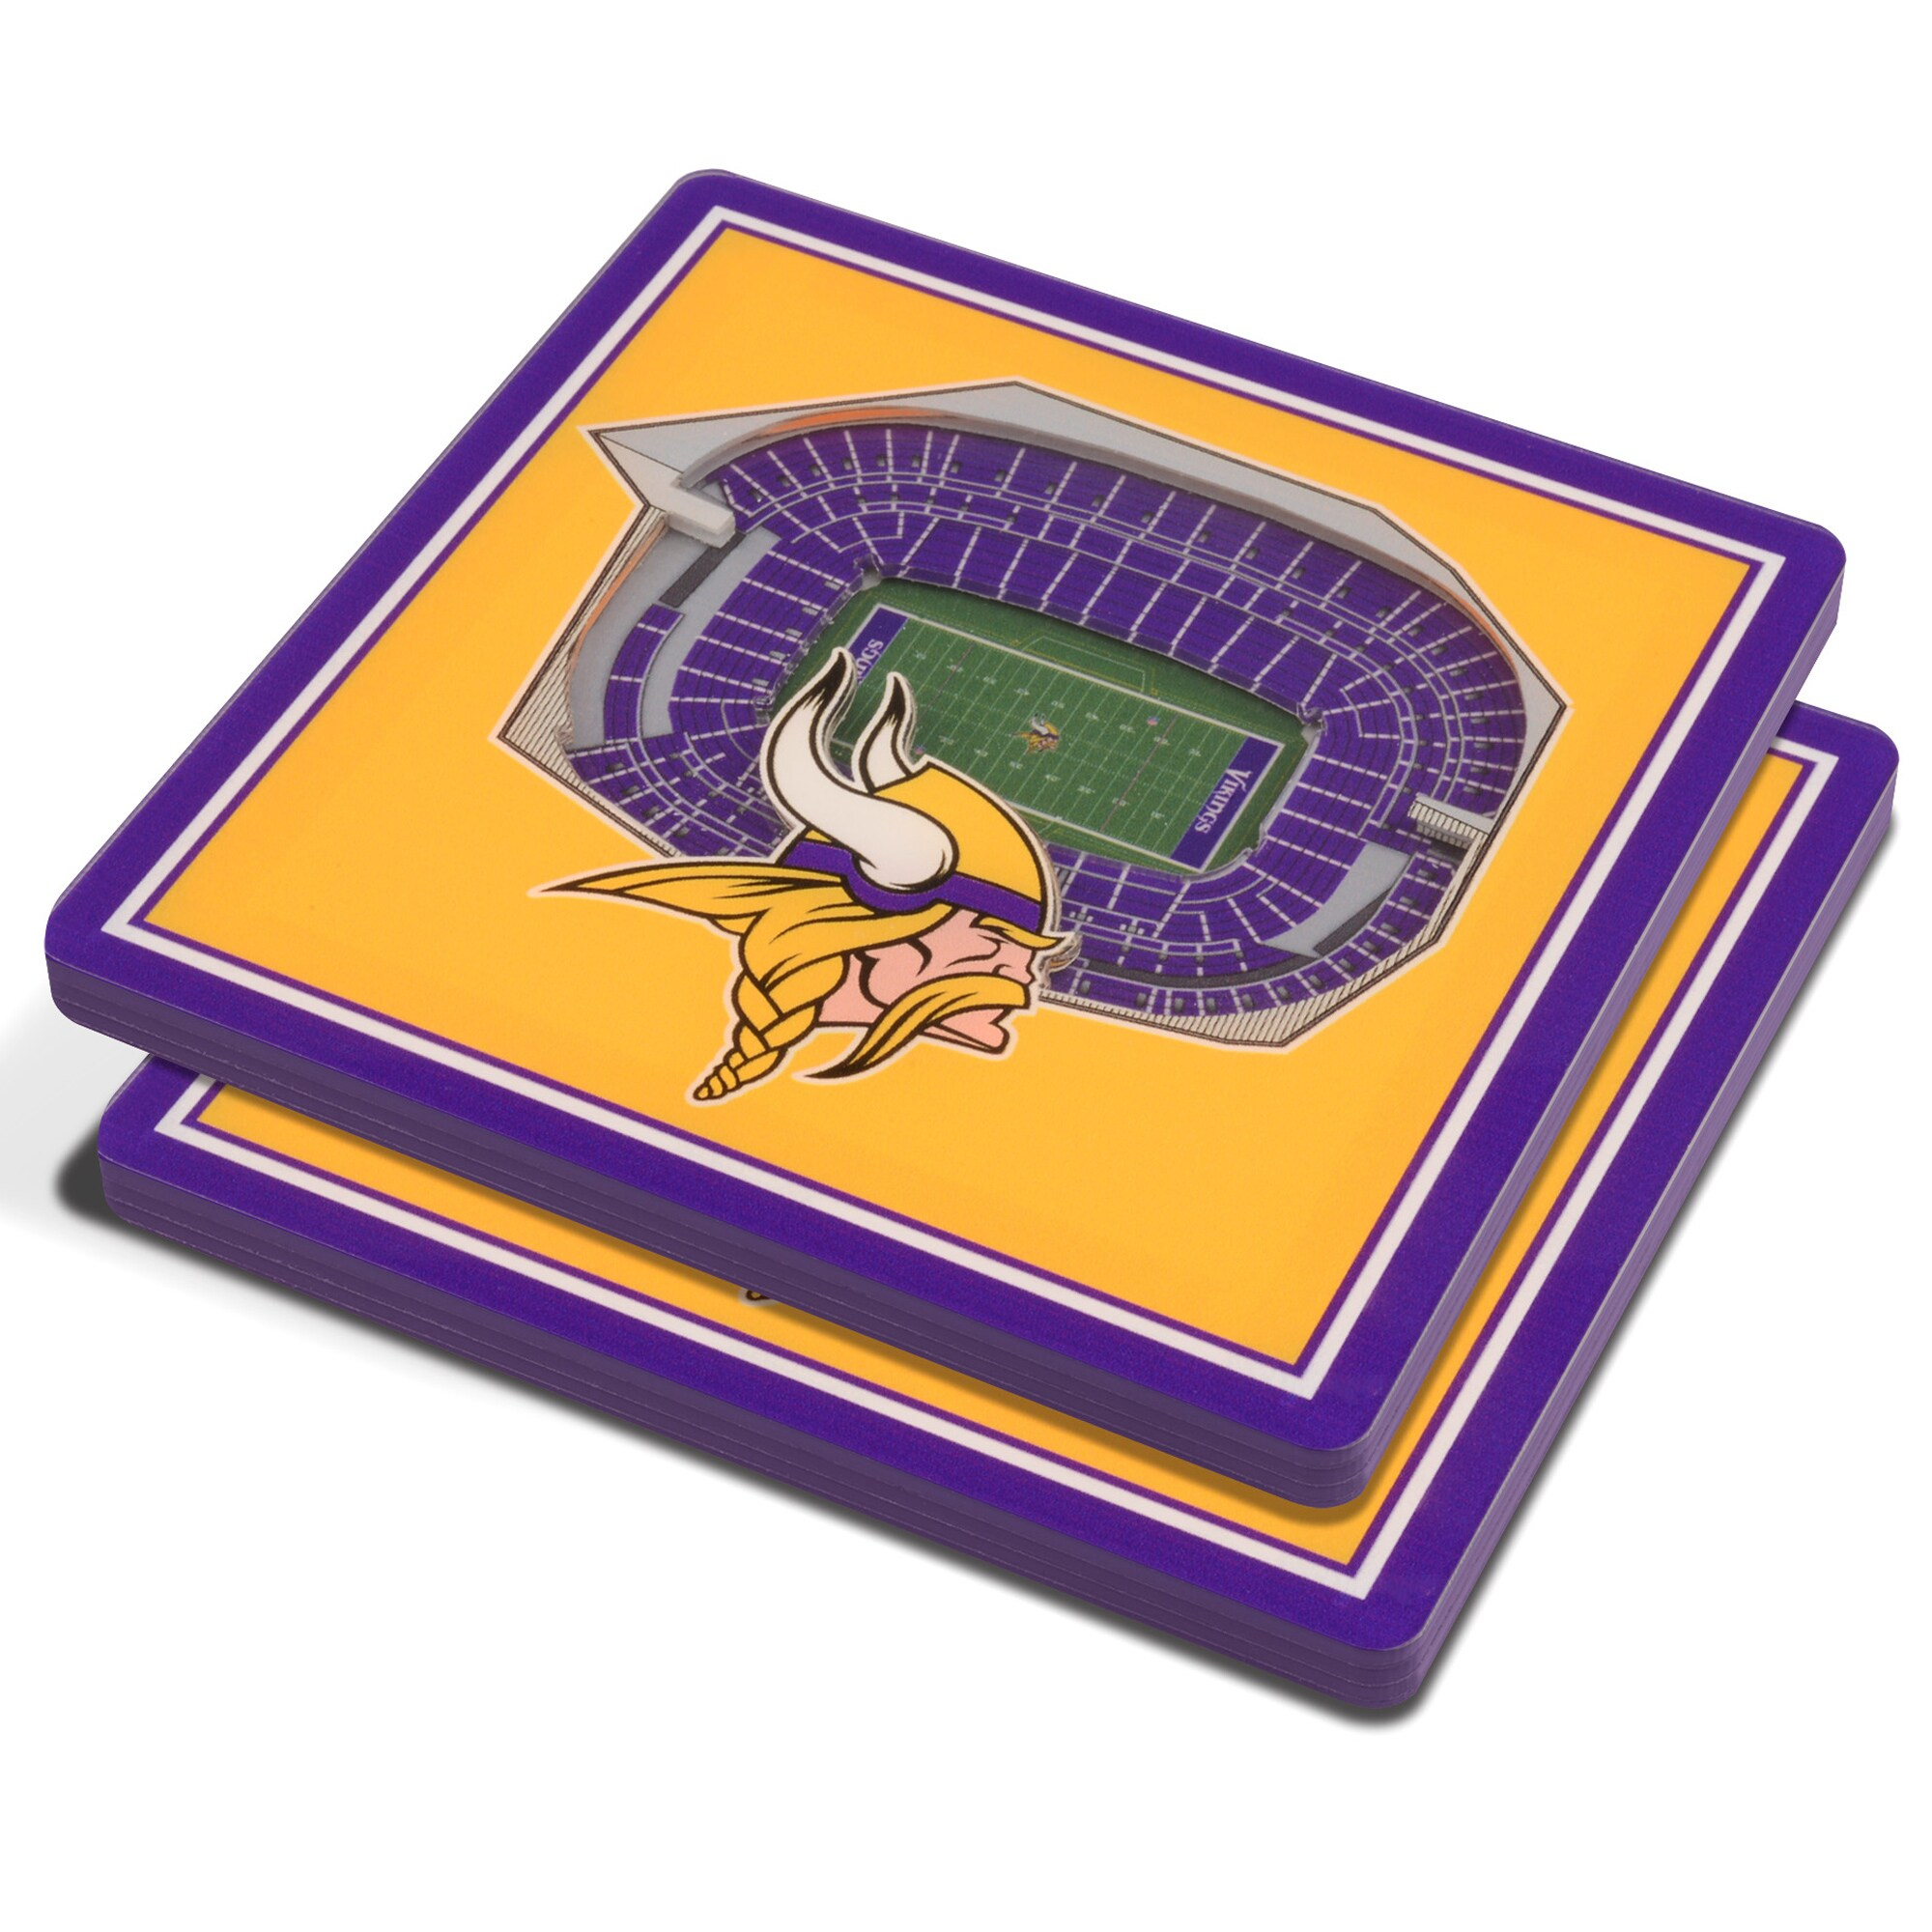 Minnesota Vikings 3D StadiumViews Coasters - Yellow